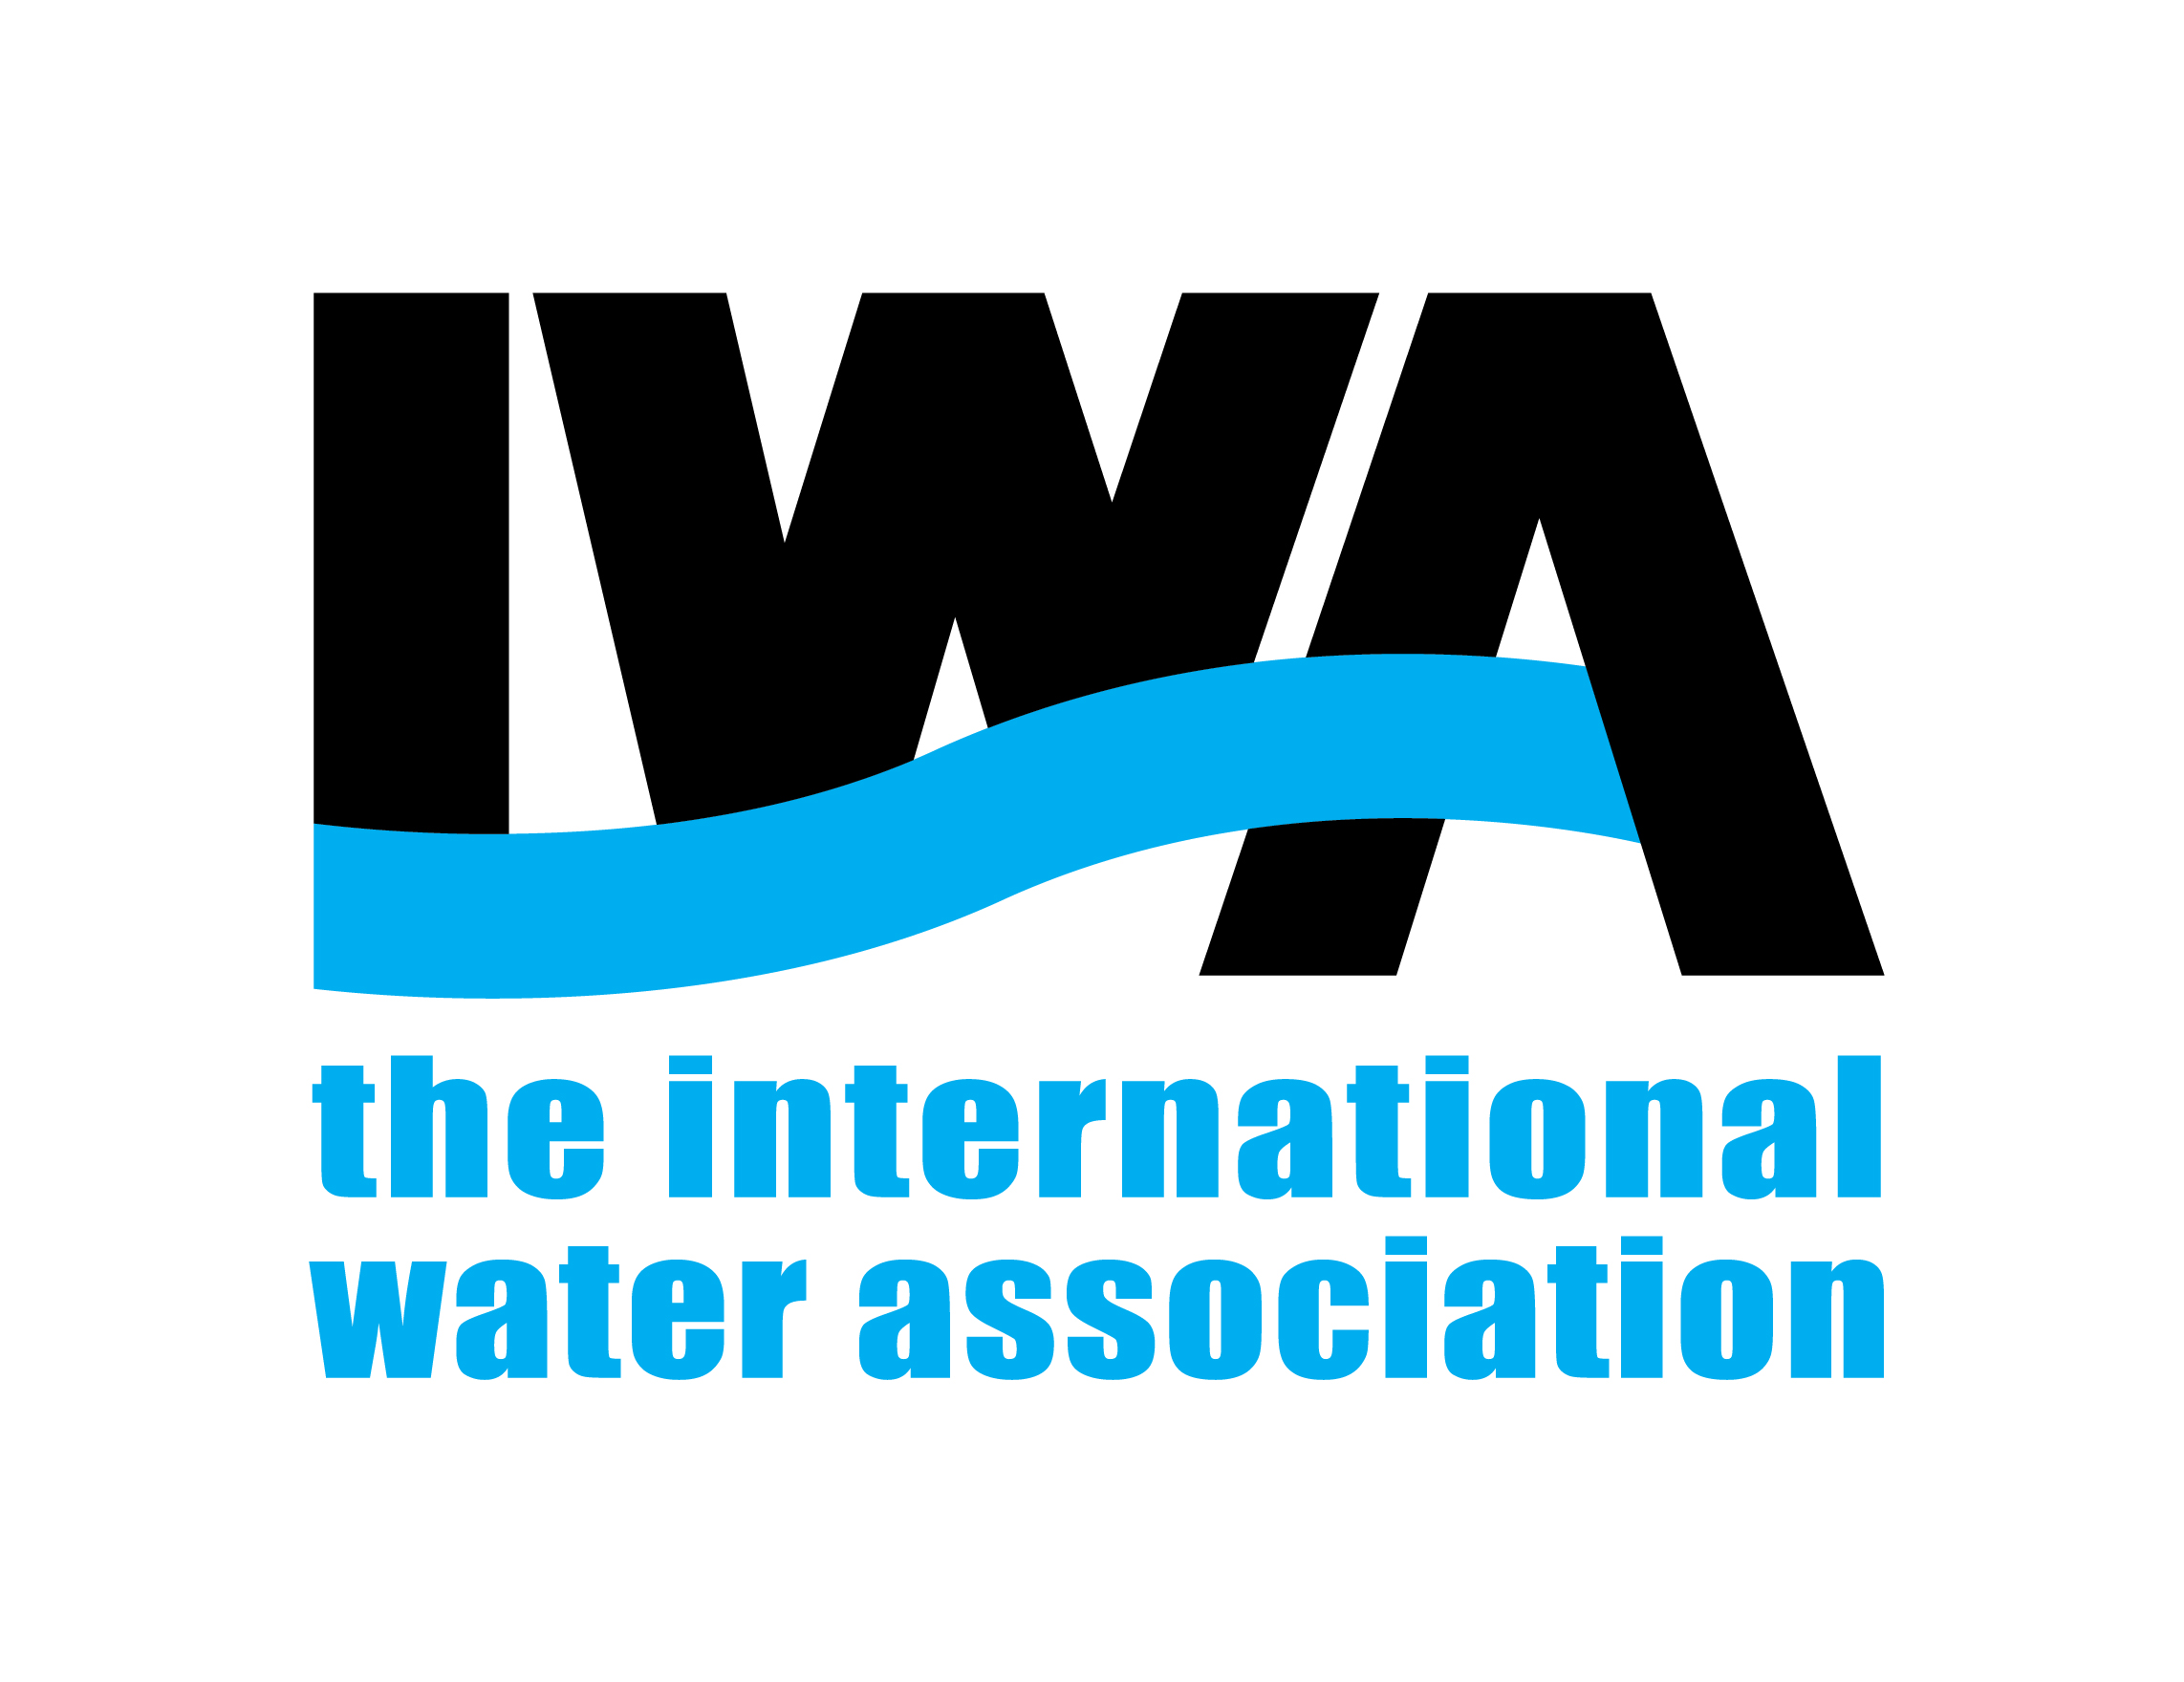 IWA LOGO white background [digital].jpg